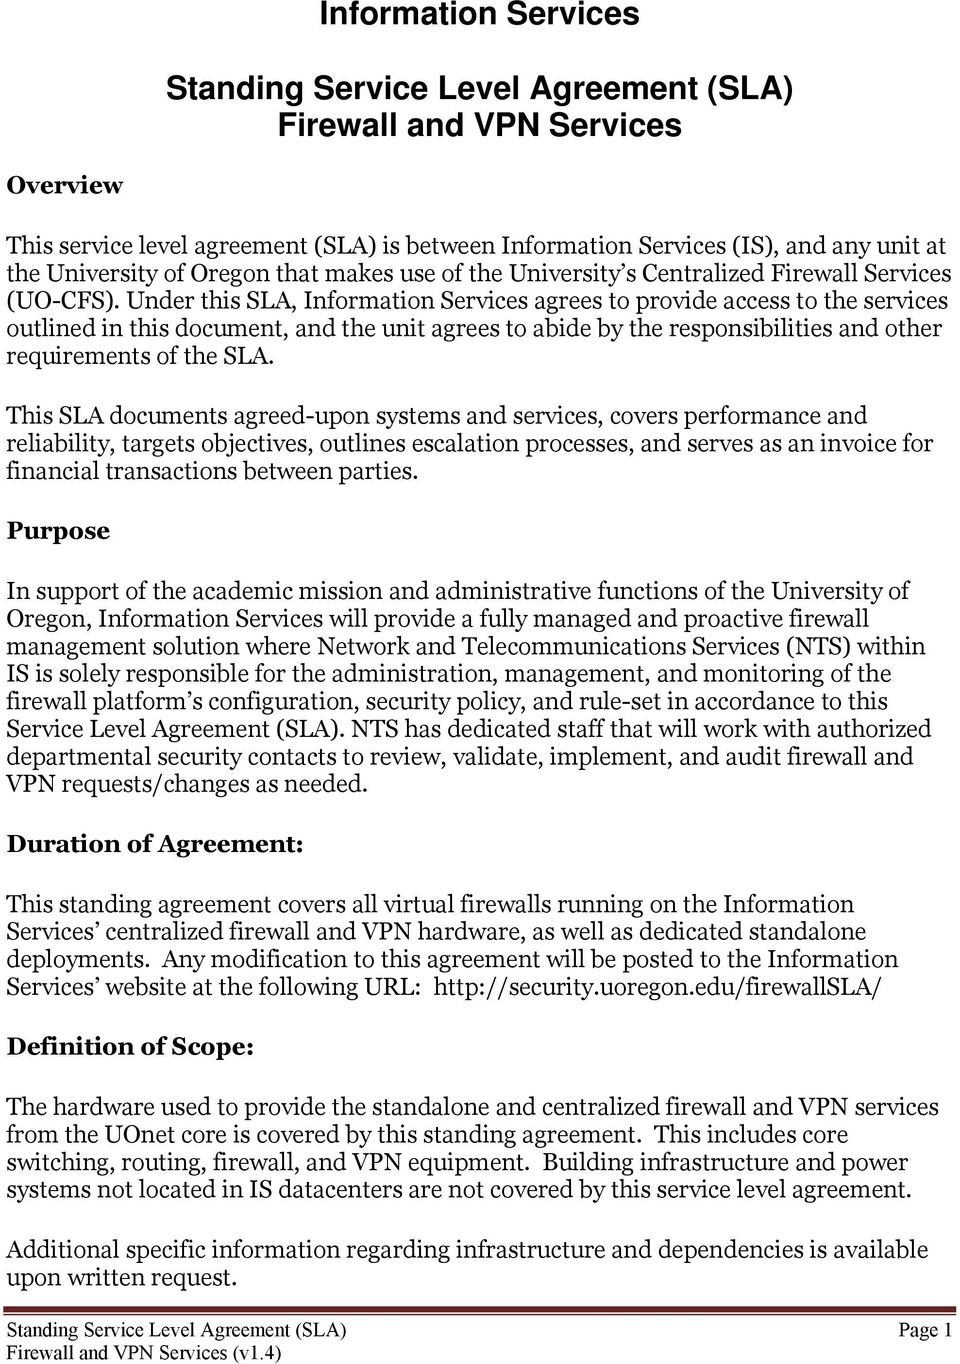 Under this SLA, Information Services agrees to provide access to the services outlined in this document, and the unit agrees to abide by the responsibilities and other requirements of the SLA.